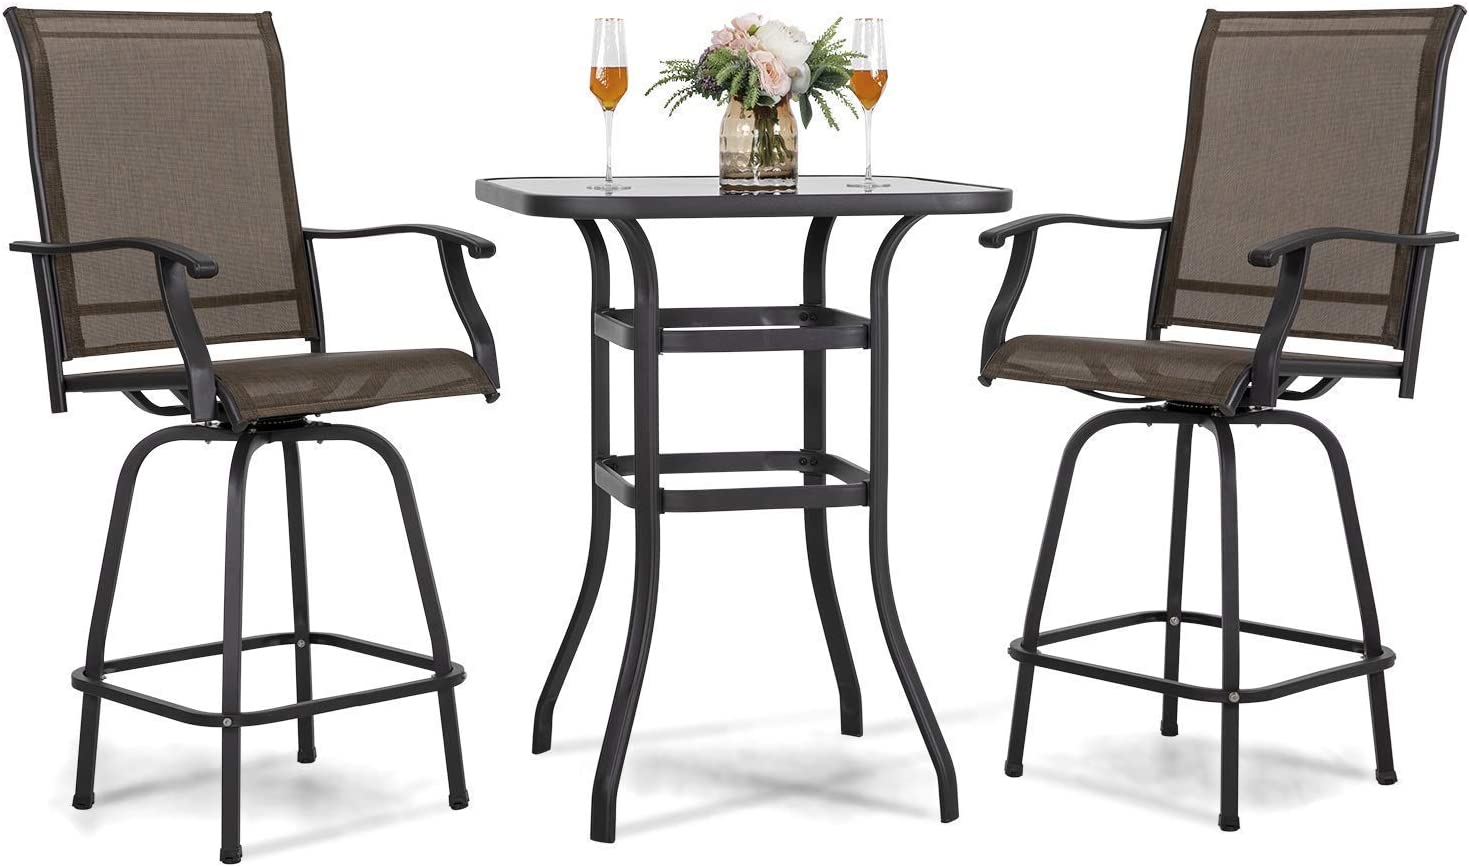 Nuu Garden 3 Piece Patio Bar Set Furniture Wrought Iron Stool & 31 inch Bar Height Table